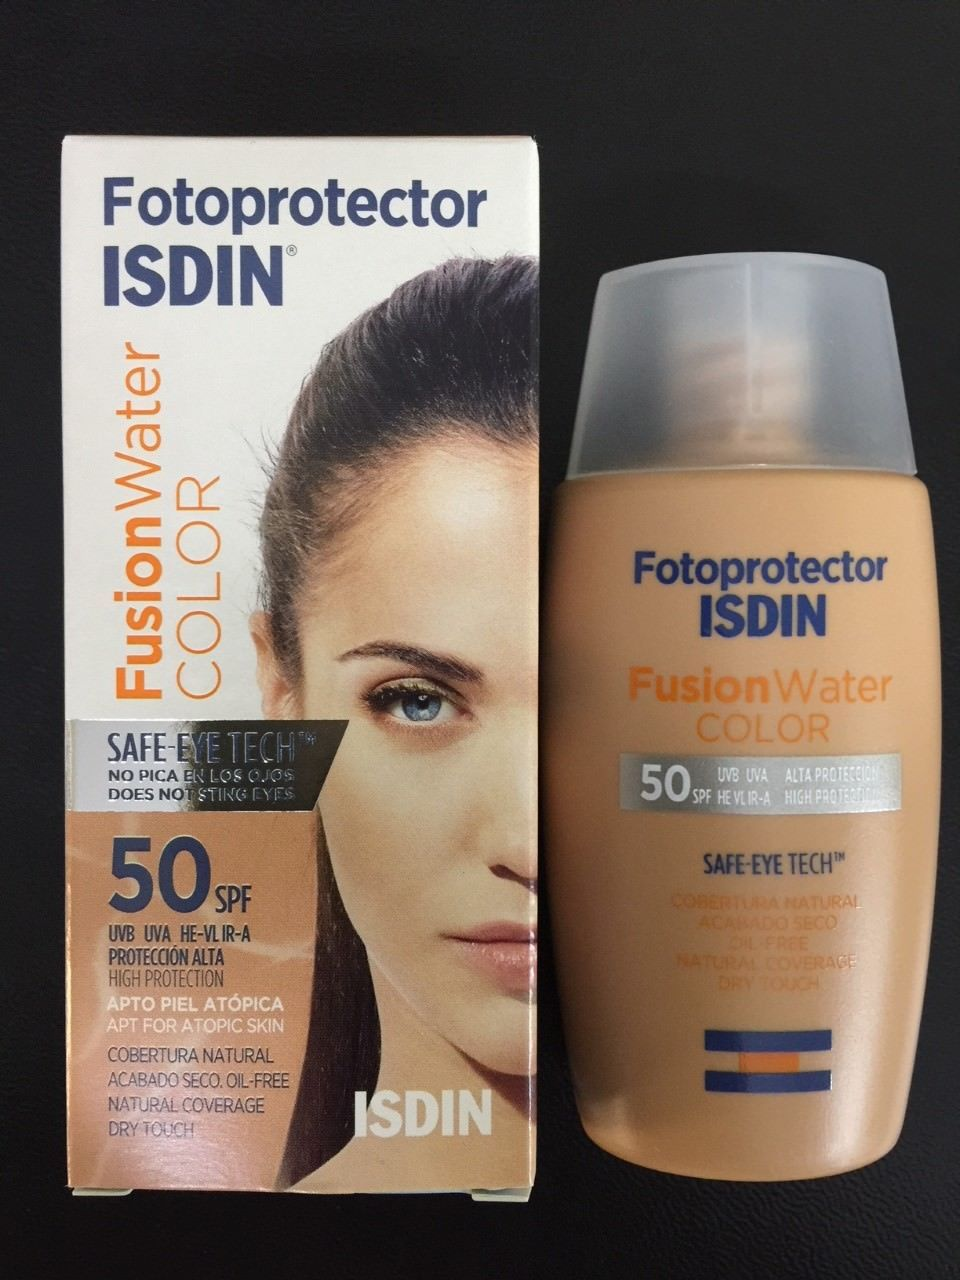 Isdin Sunscreens Health Beauty Fusion Water Sunscreen Ebay